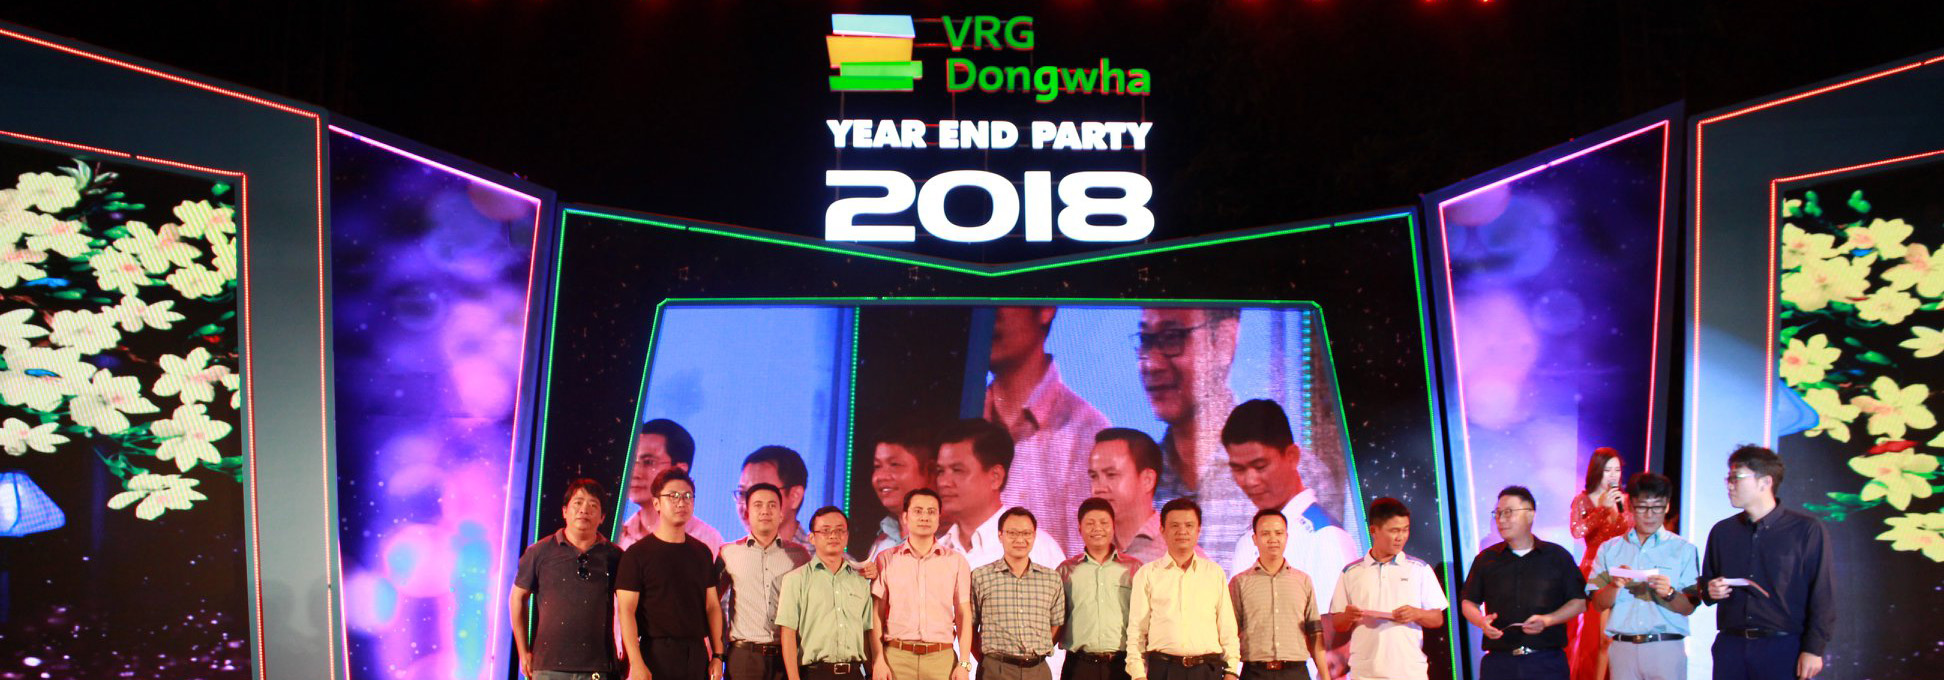 YEAR END PARTY DONGWHA 2018